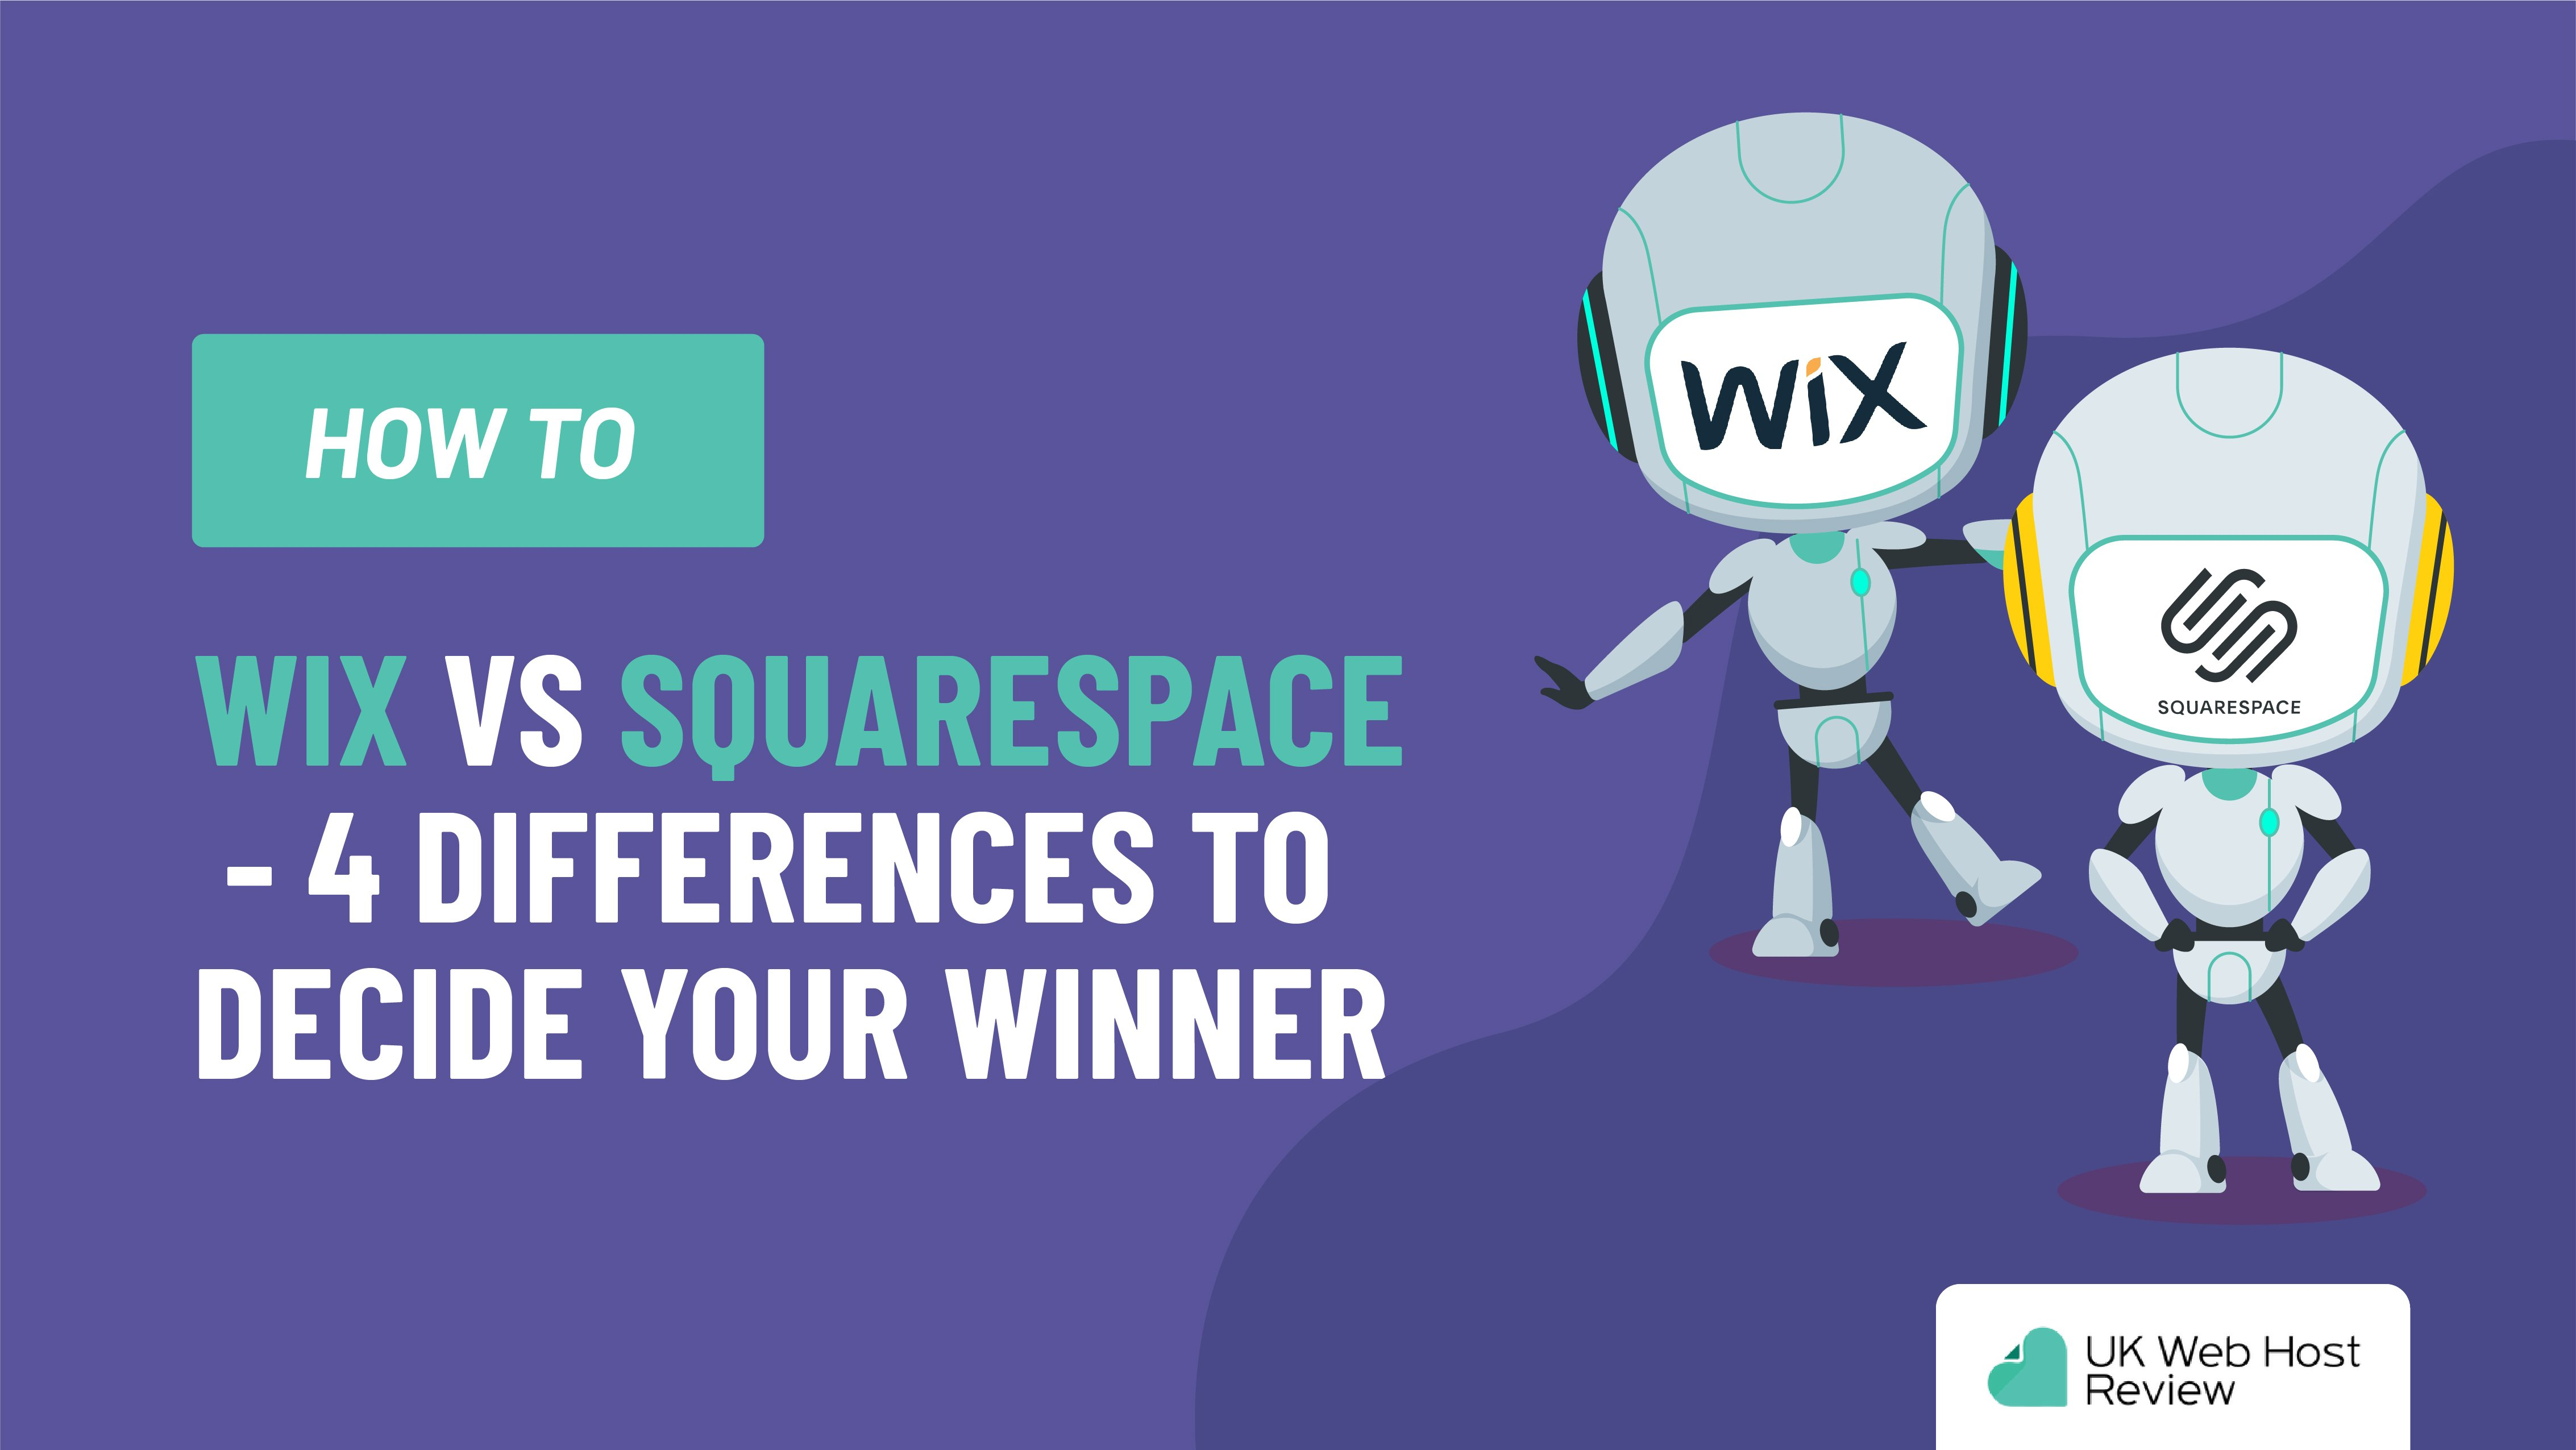 Wix VS SquareSpace – 4 Differences to Decide Your Winner